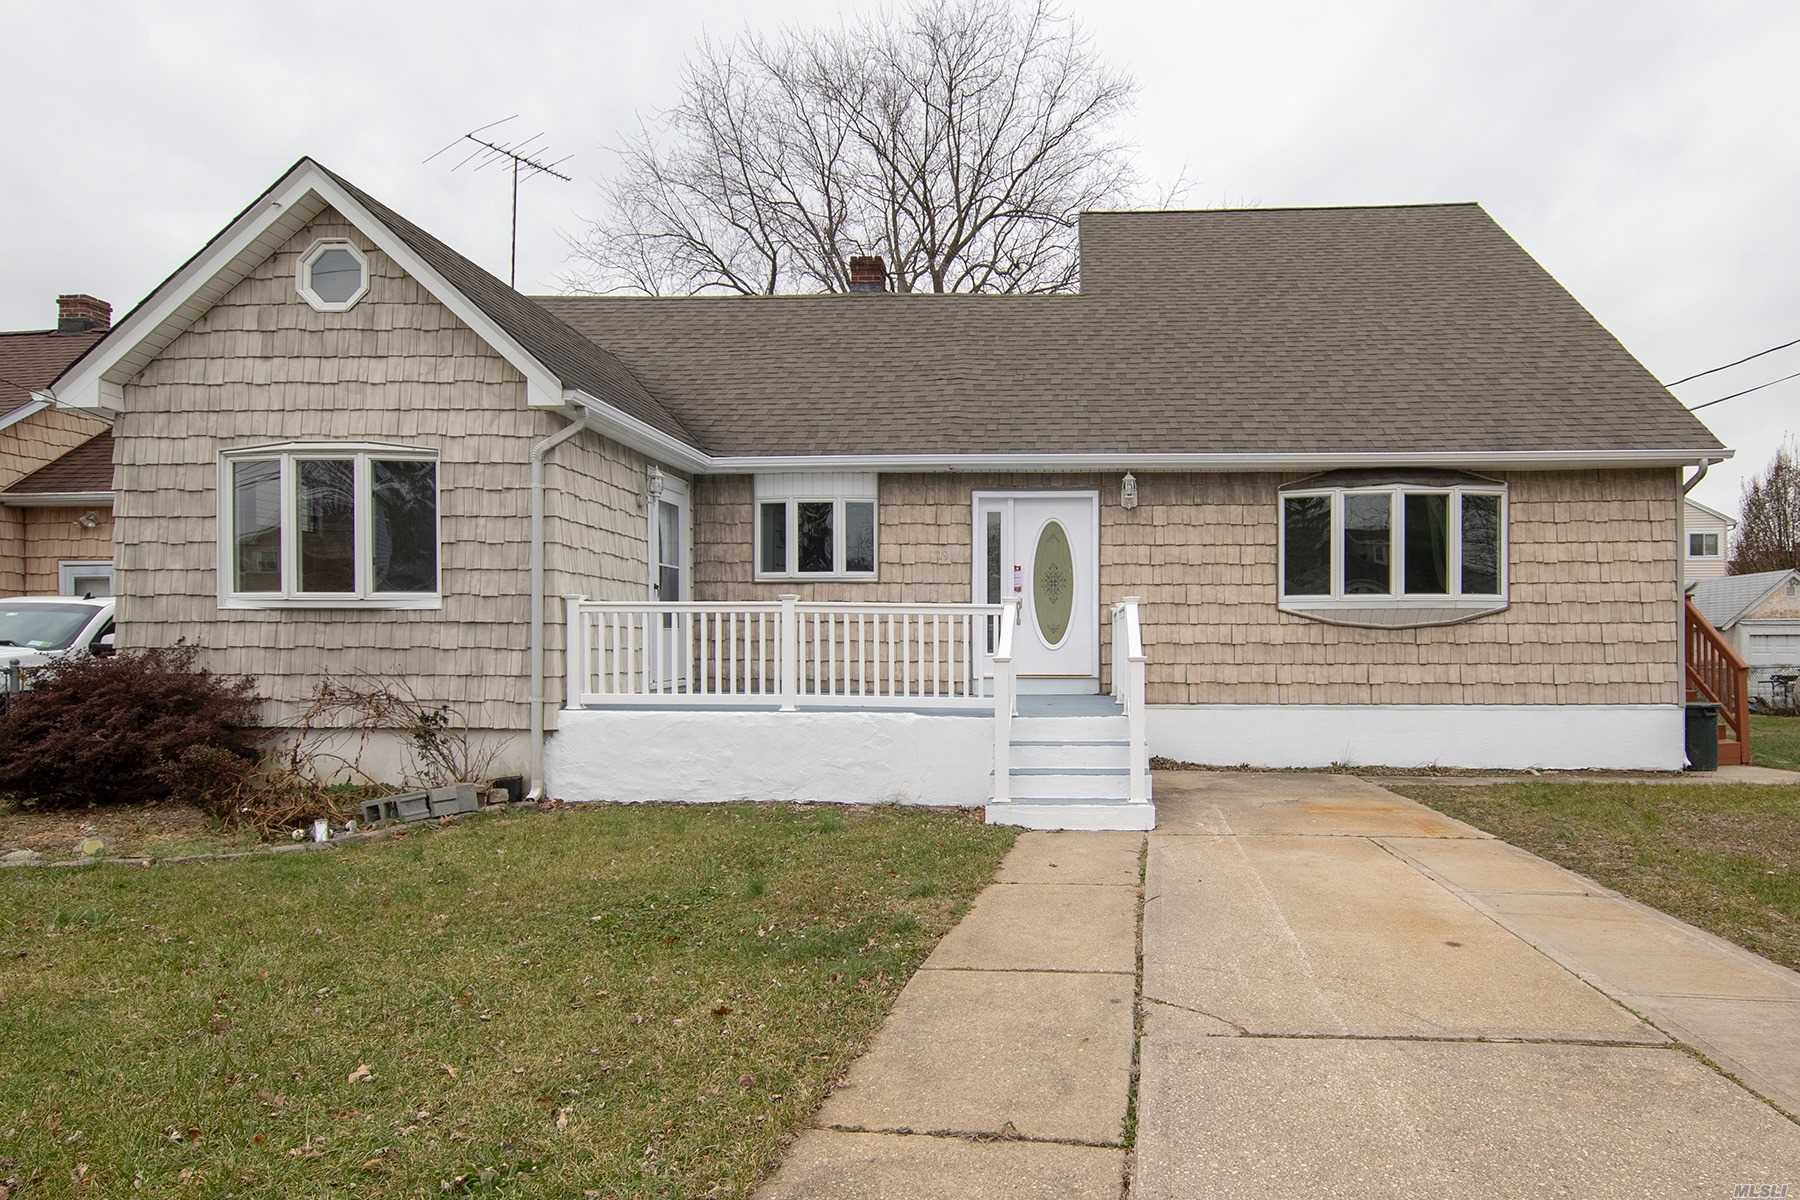 Mother Daughter Set Up (New Buyer Has To Apply For Proper Permits), Brand New Kitchen W/ Granite Counter Tops And New Appliances, 3 New Full Bathrooms, 2 Living Rooms. Master Bedroom Has Master Bathroom, Wic. Separate Entrance, Deck.